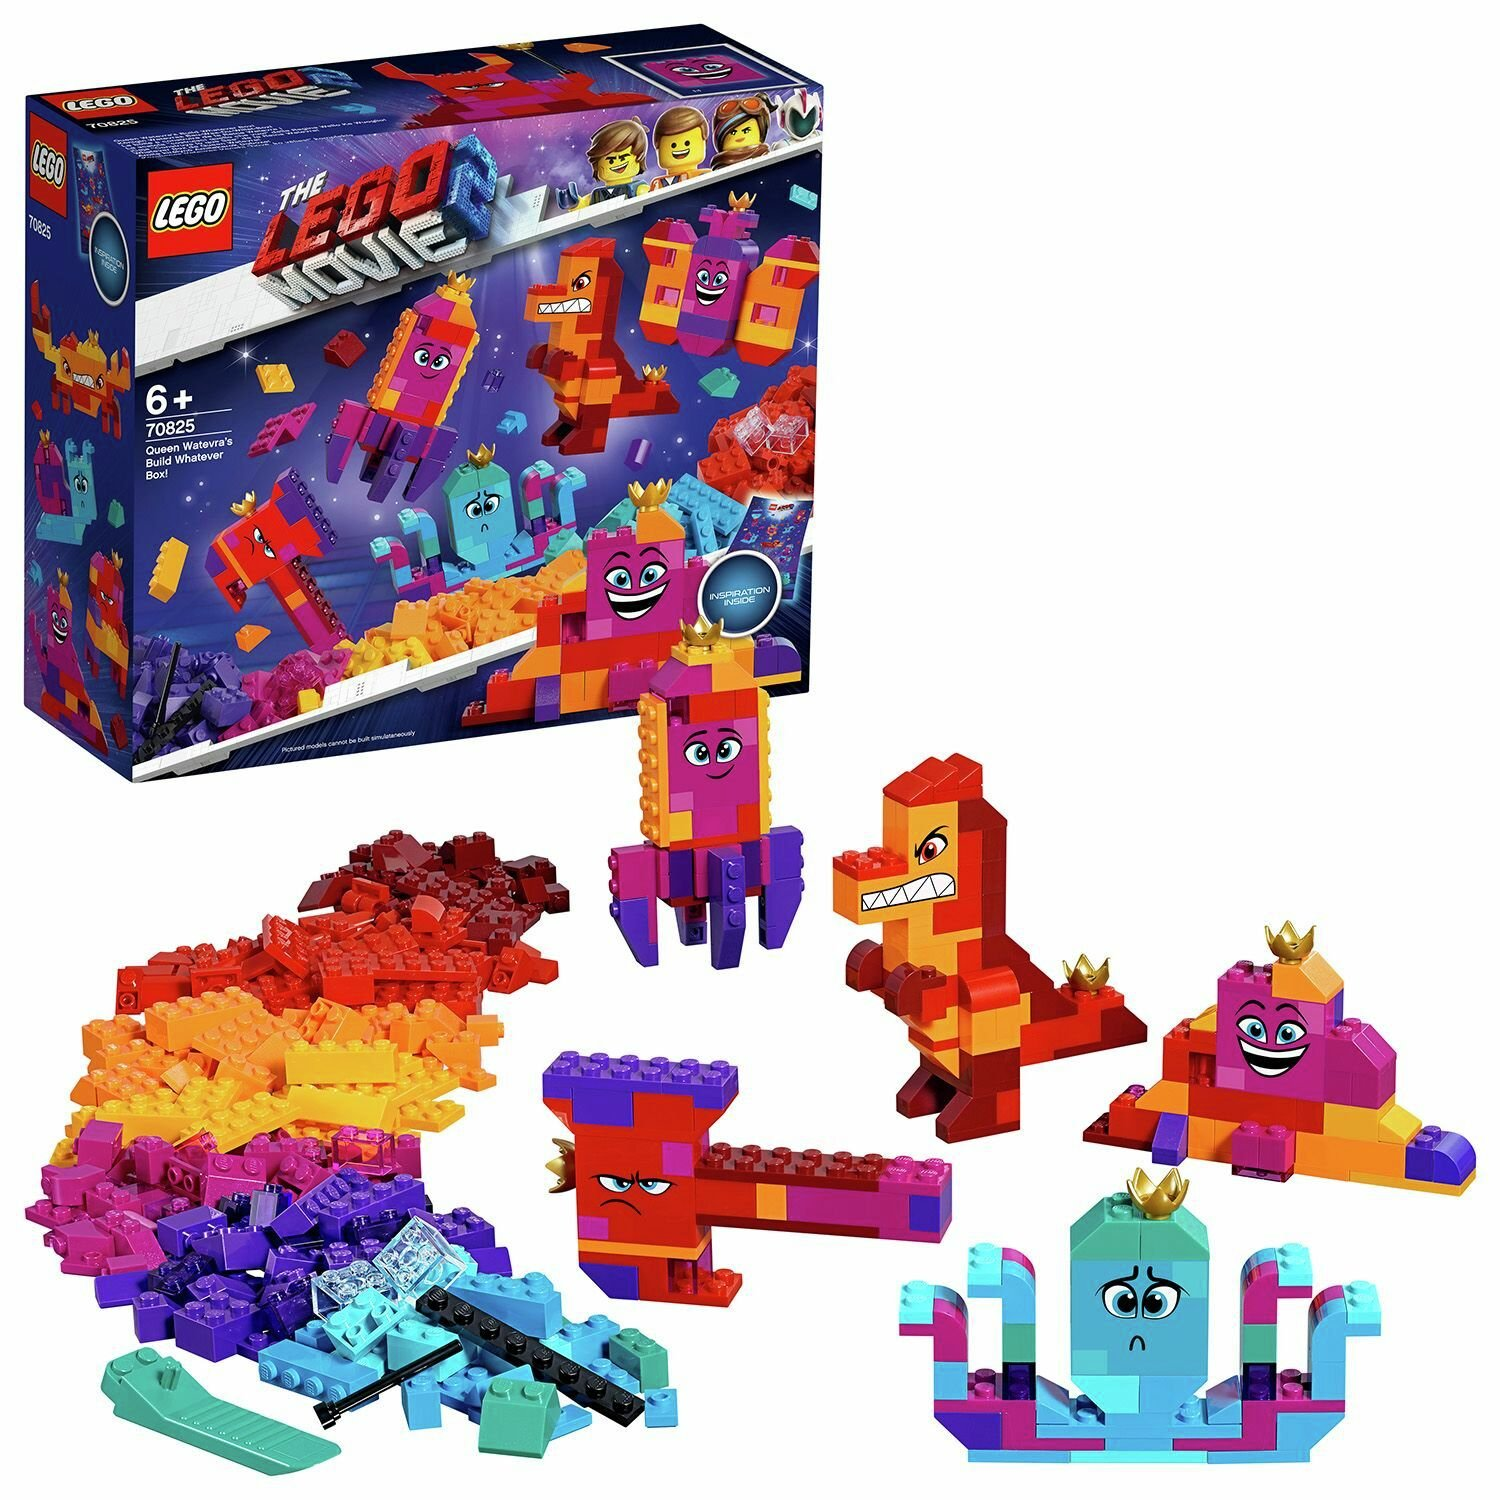 LEGO Movie 2 Queen Watevra's Building Toy Brick Set - 70825